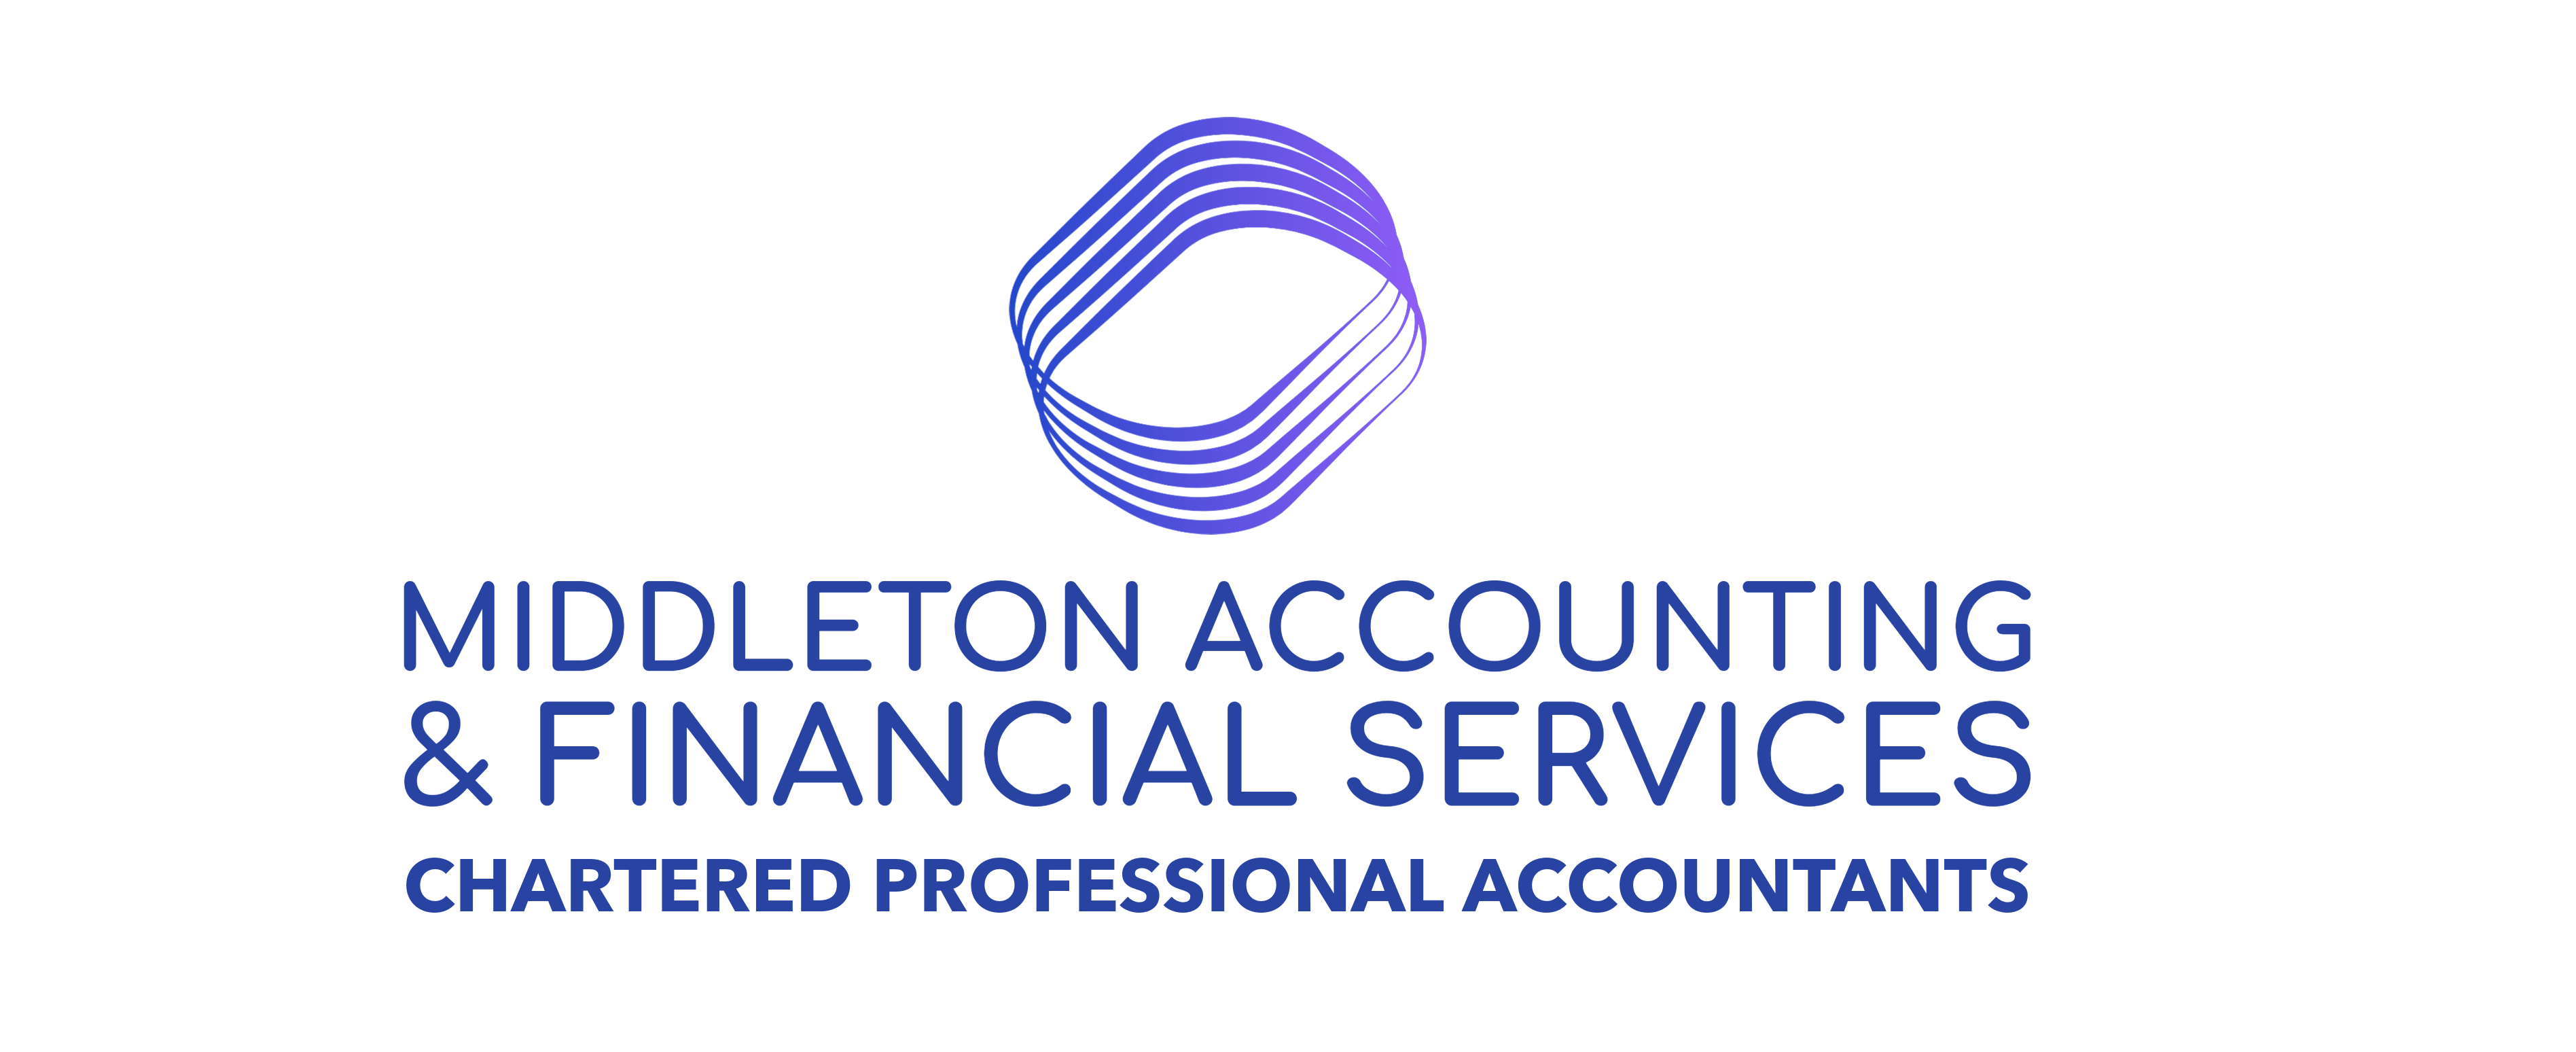 Middleton Accounting and Financial Services